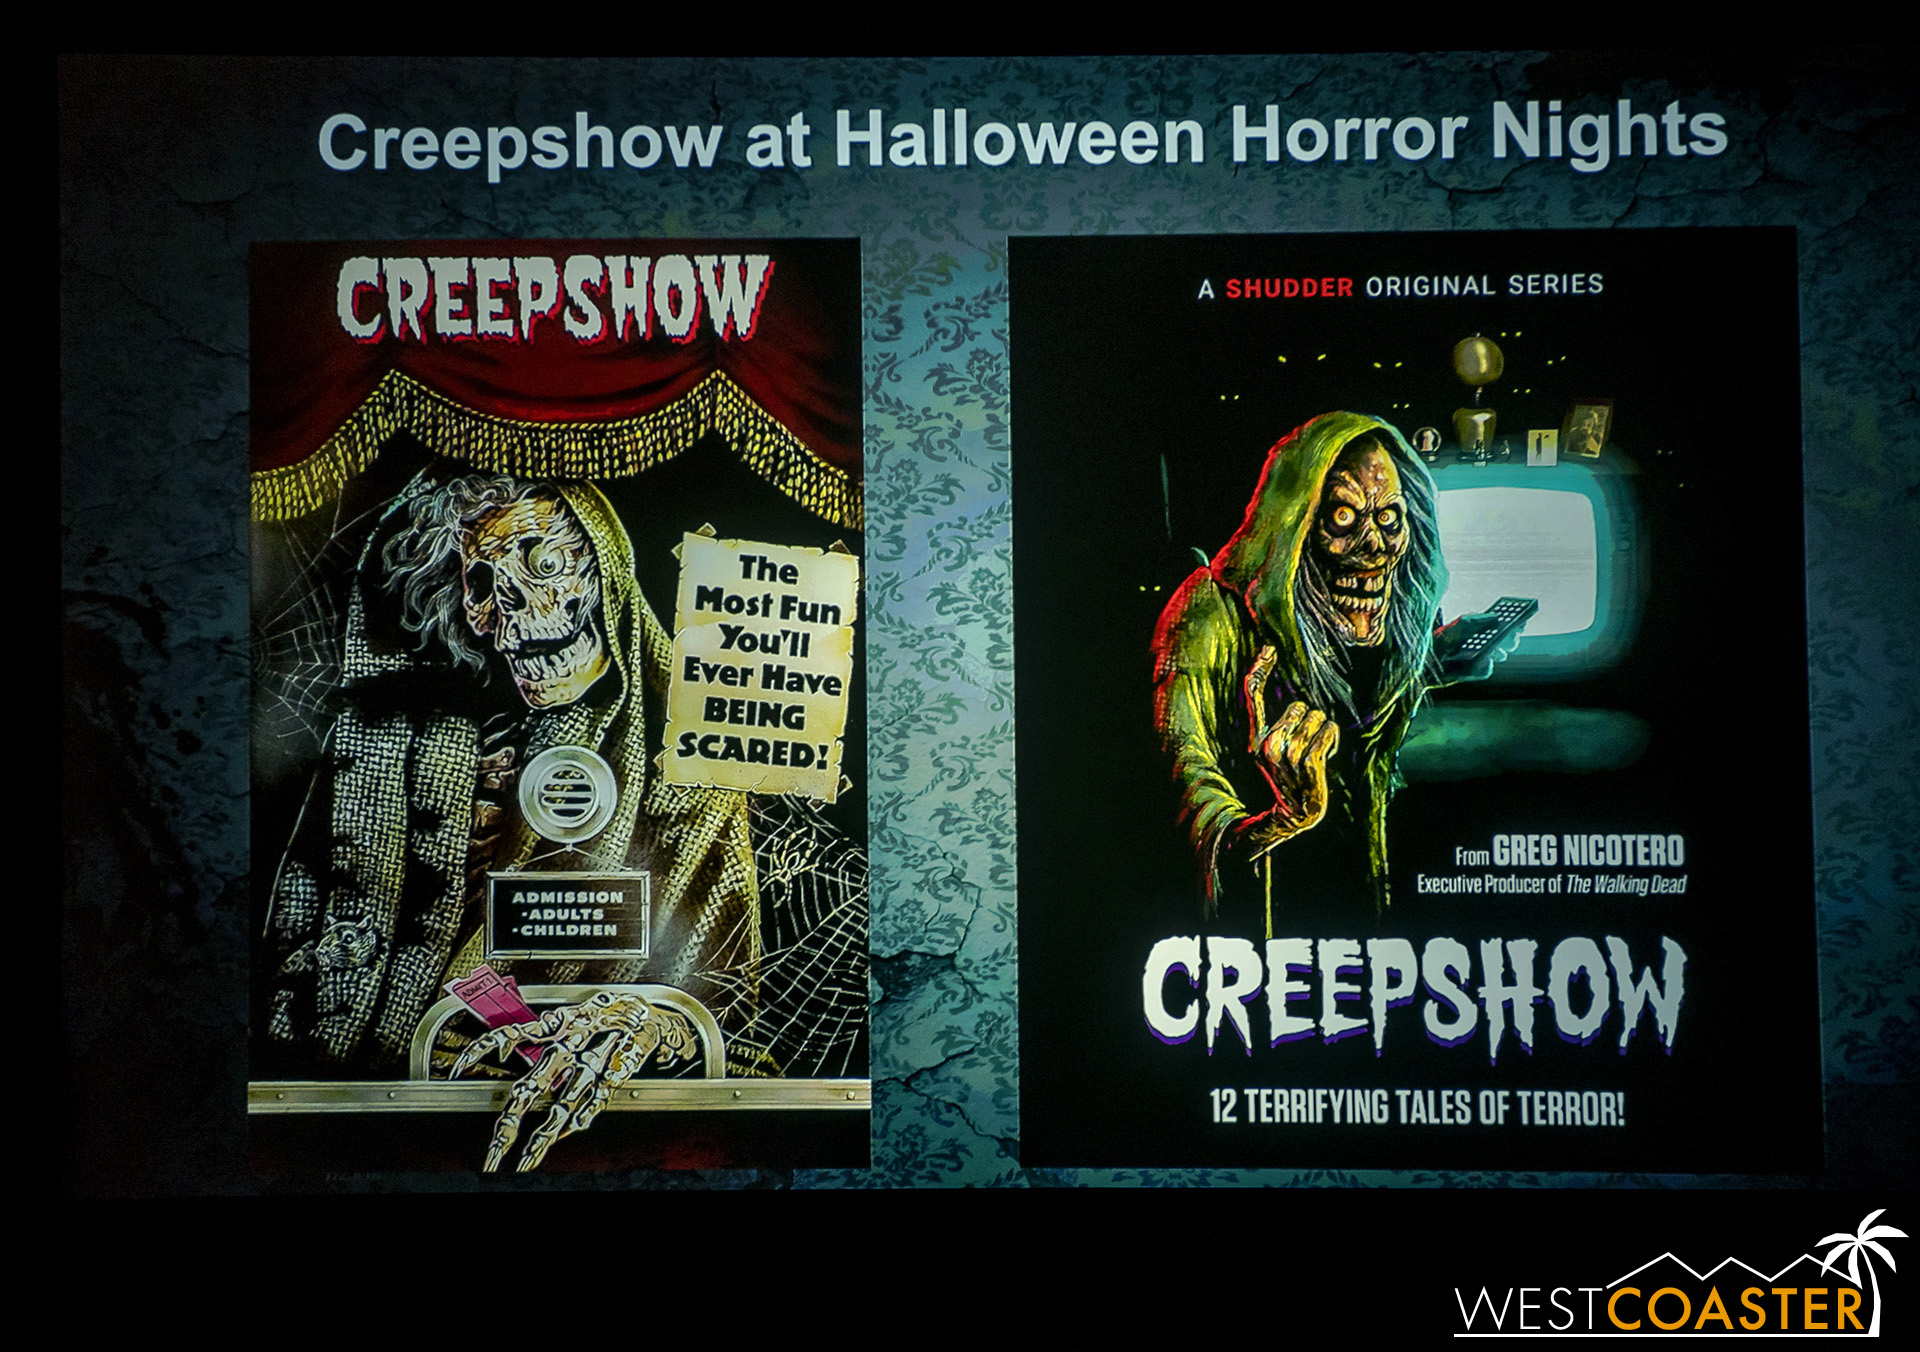 The big announcement right off the bat: the event's sixth new maze of the season, Creepshow!